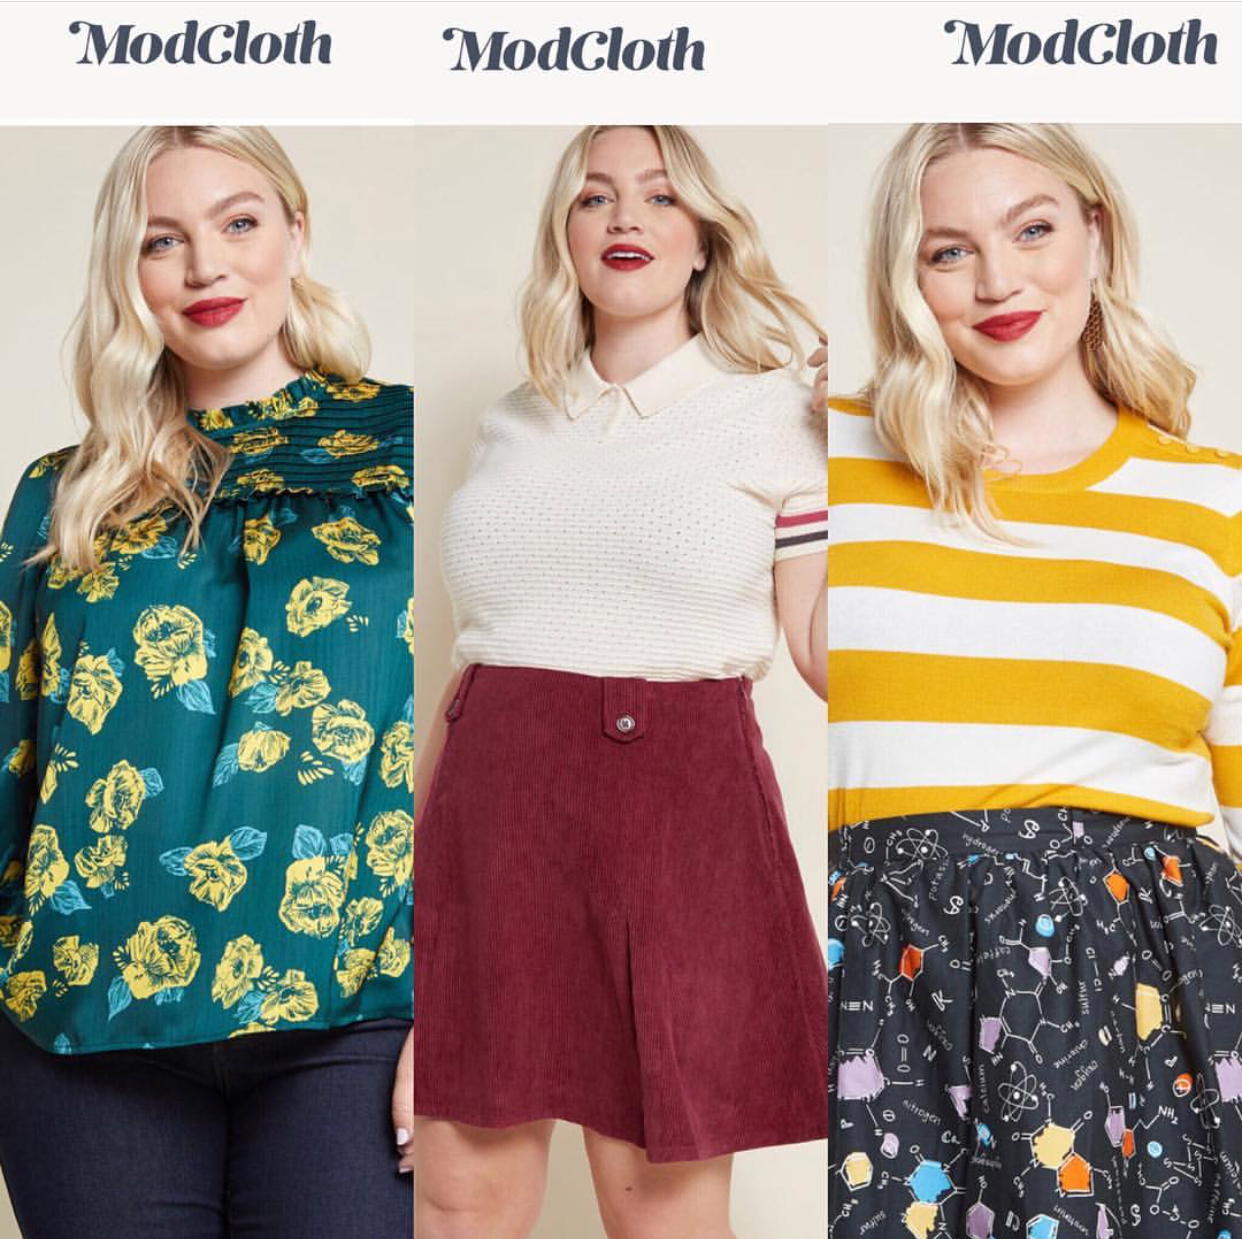 Makeup for Modcloth